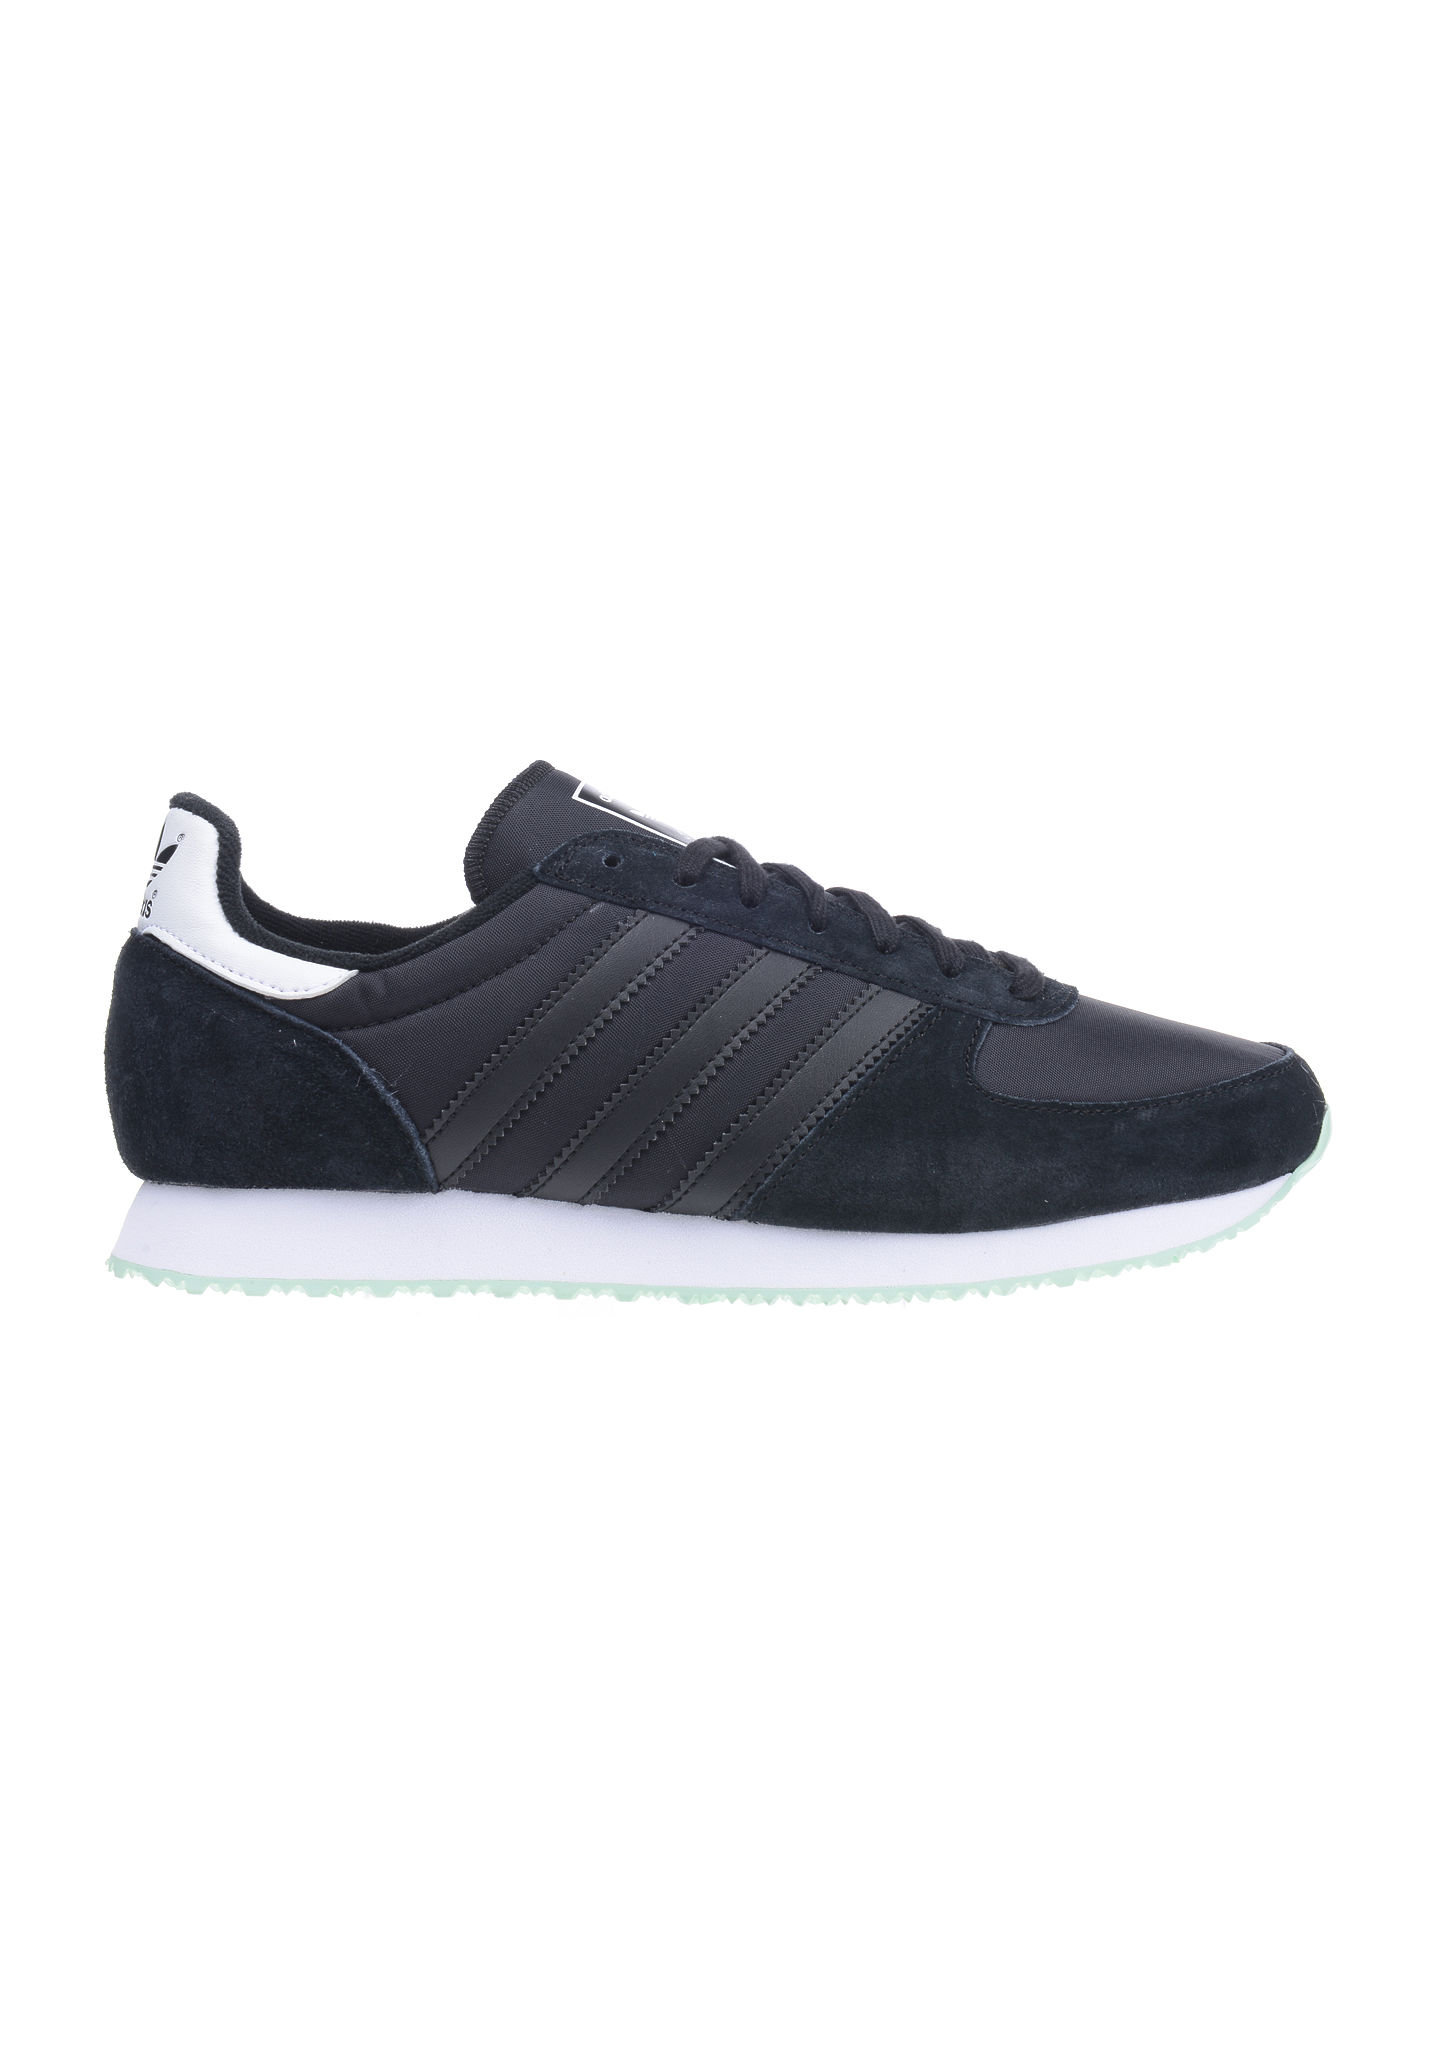 adidas sneaker zx racer adidas zx 9000 adidas zx flux. Black Bedroom Furniture Sets. Home Design Ideas